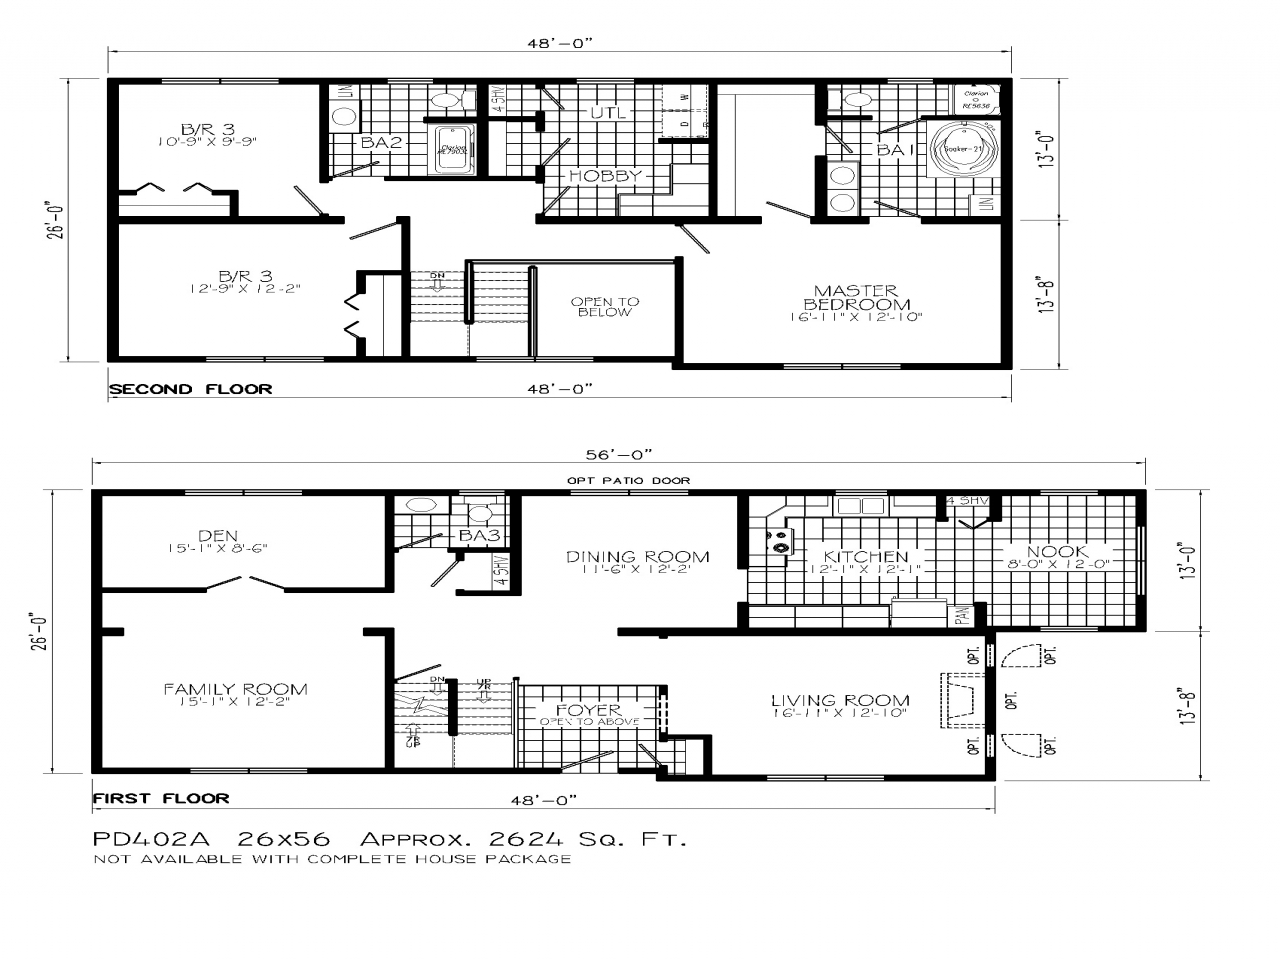 Small 2 Story Floor Plans: 2 Floor House With Land 2 Story House Floor Plans, Small